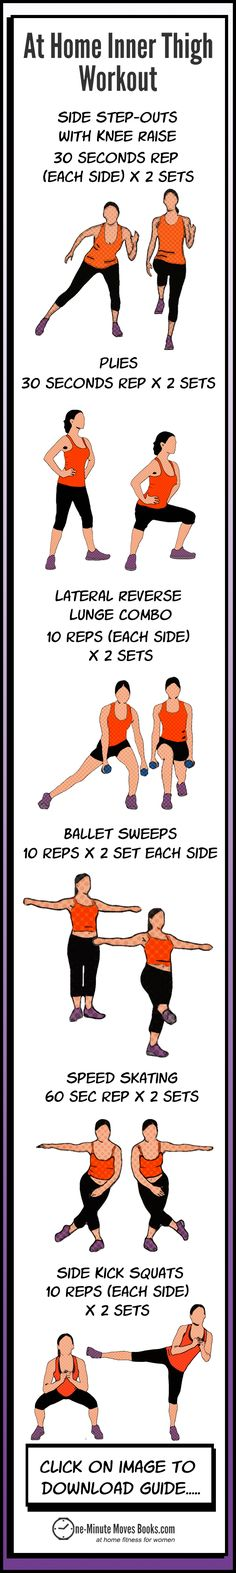 Containing 6 sculpting moves, the free at home #innerthighworkout Guide helps to tone, trim and strengthen inner thighs. #innerthighexercises #innerthighworkouts #legworkout